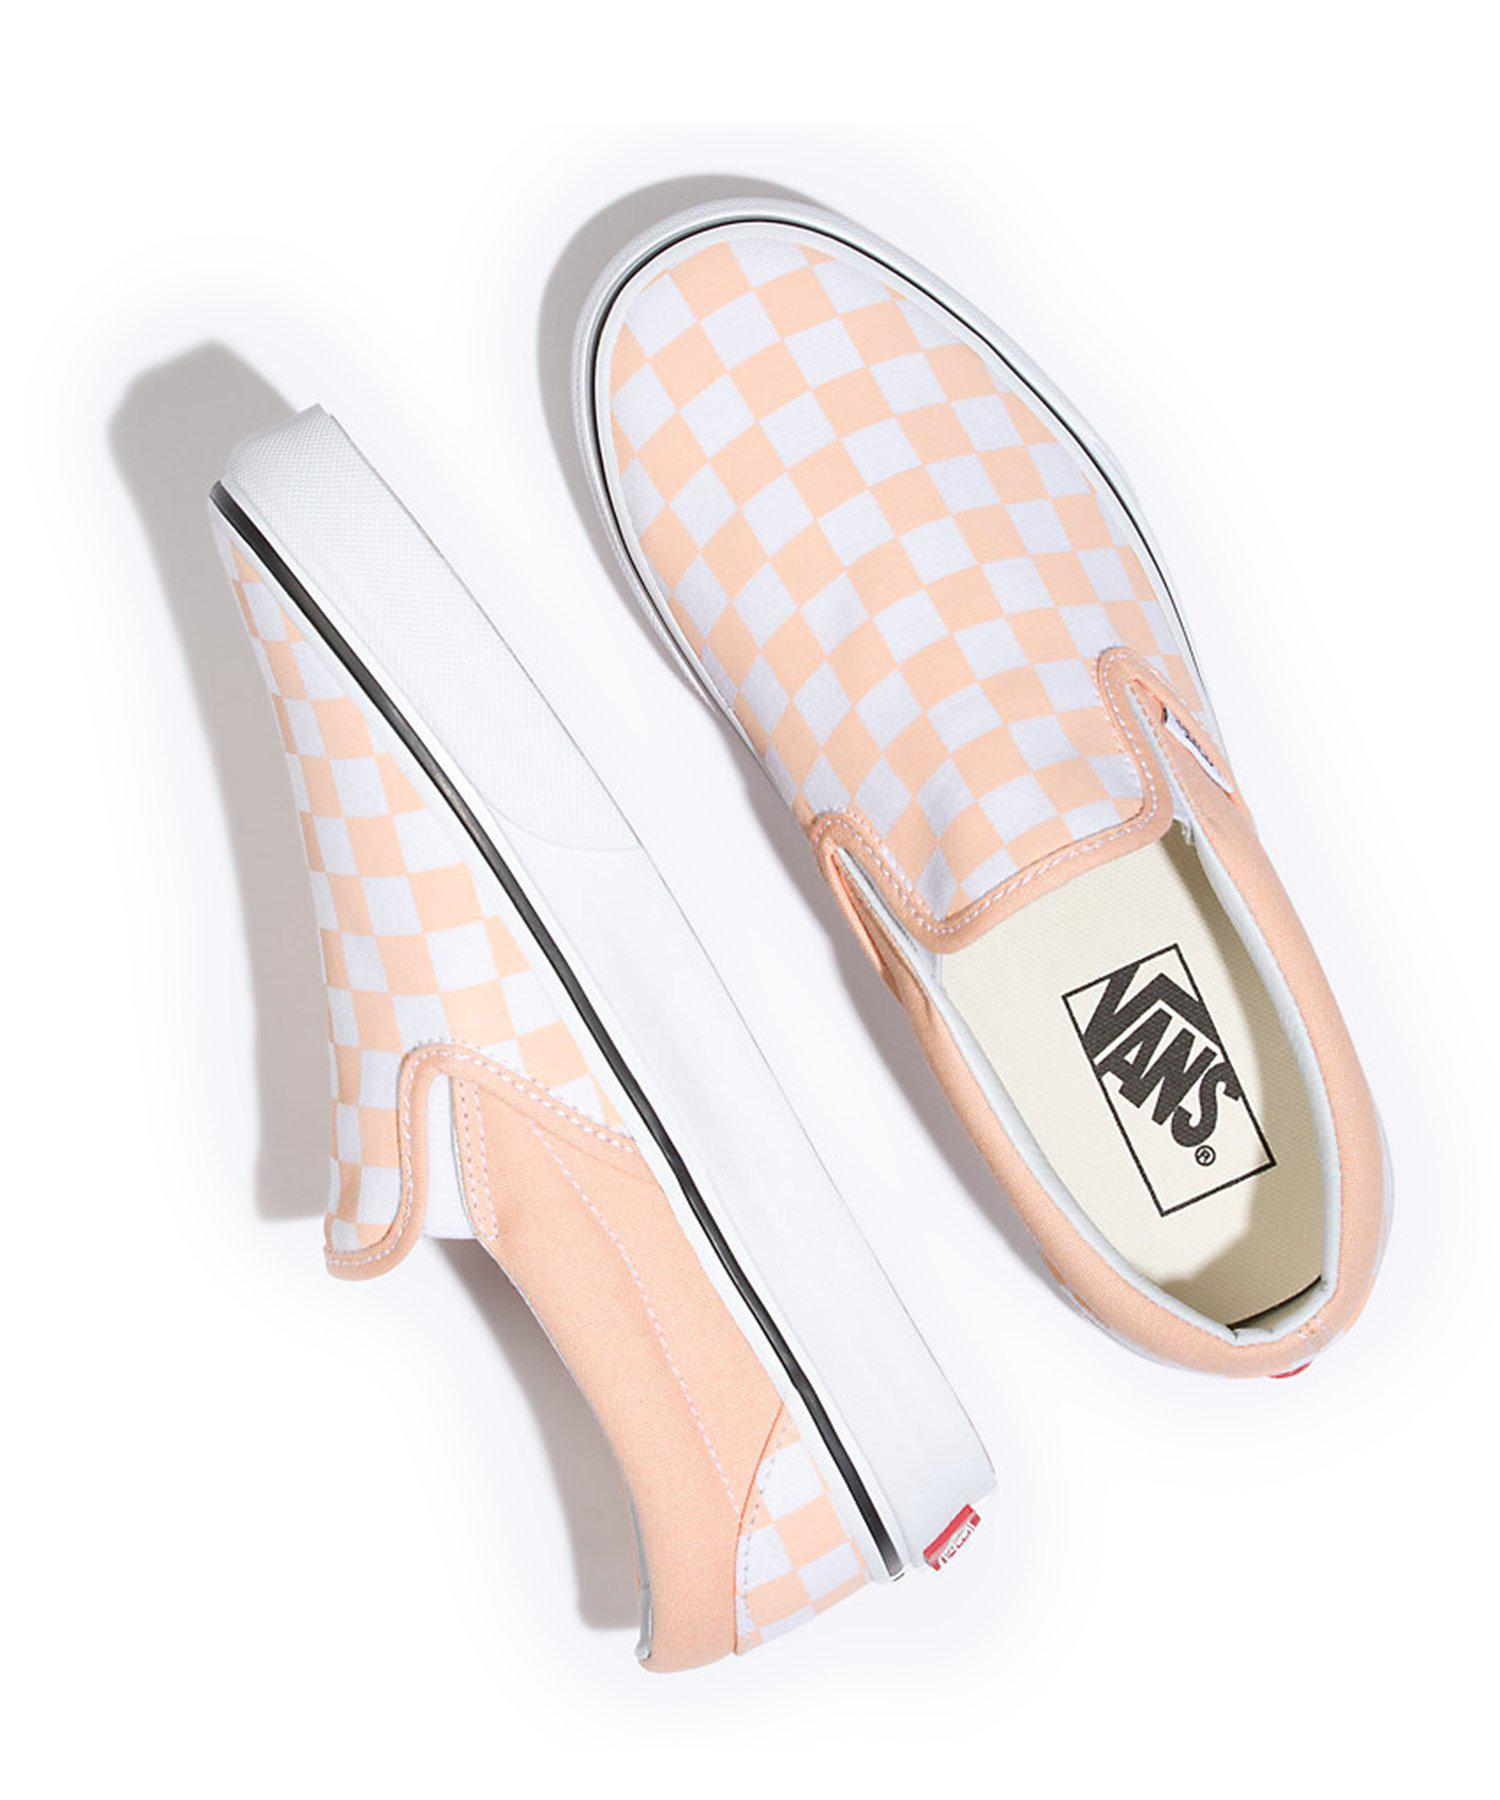 Lyst - Vans Classic Checkerboard Slip-on In Bleached Apricot in ... 47fbfcb49